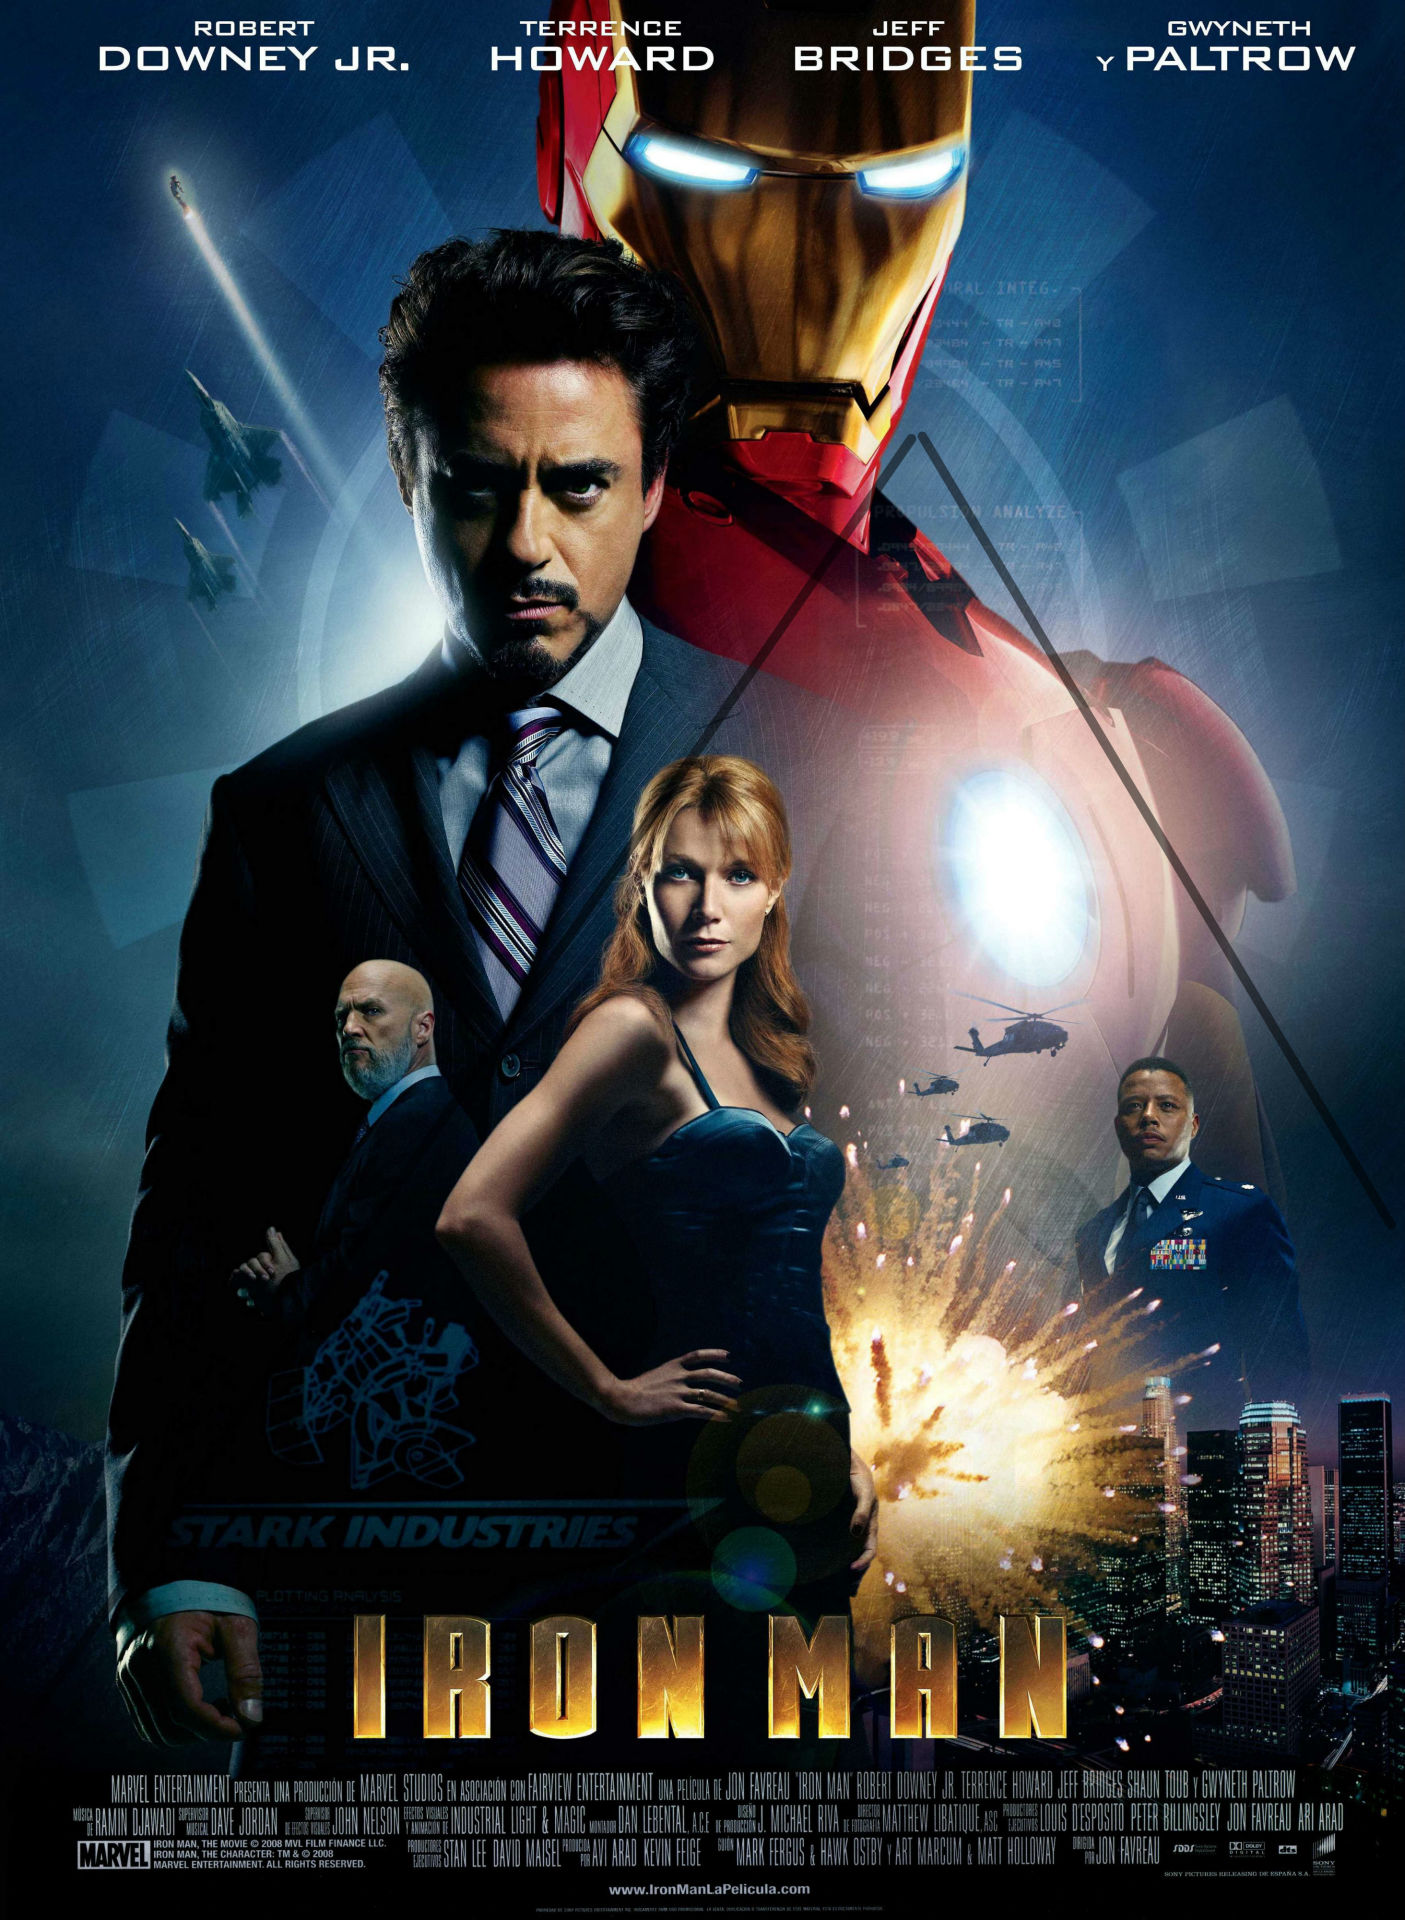 Episode 001 - Iron Man (2008)